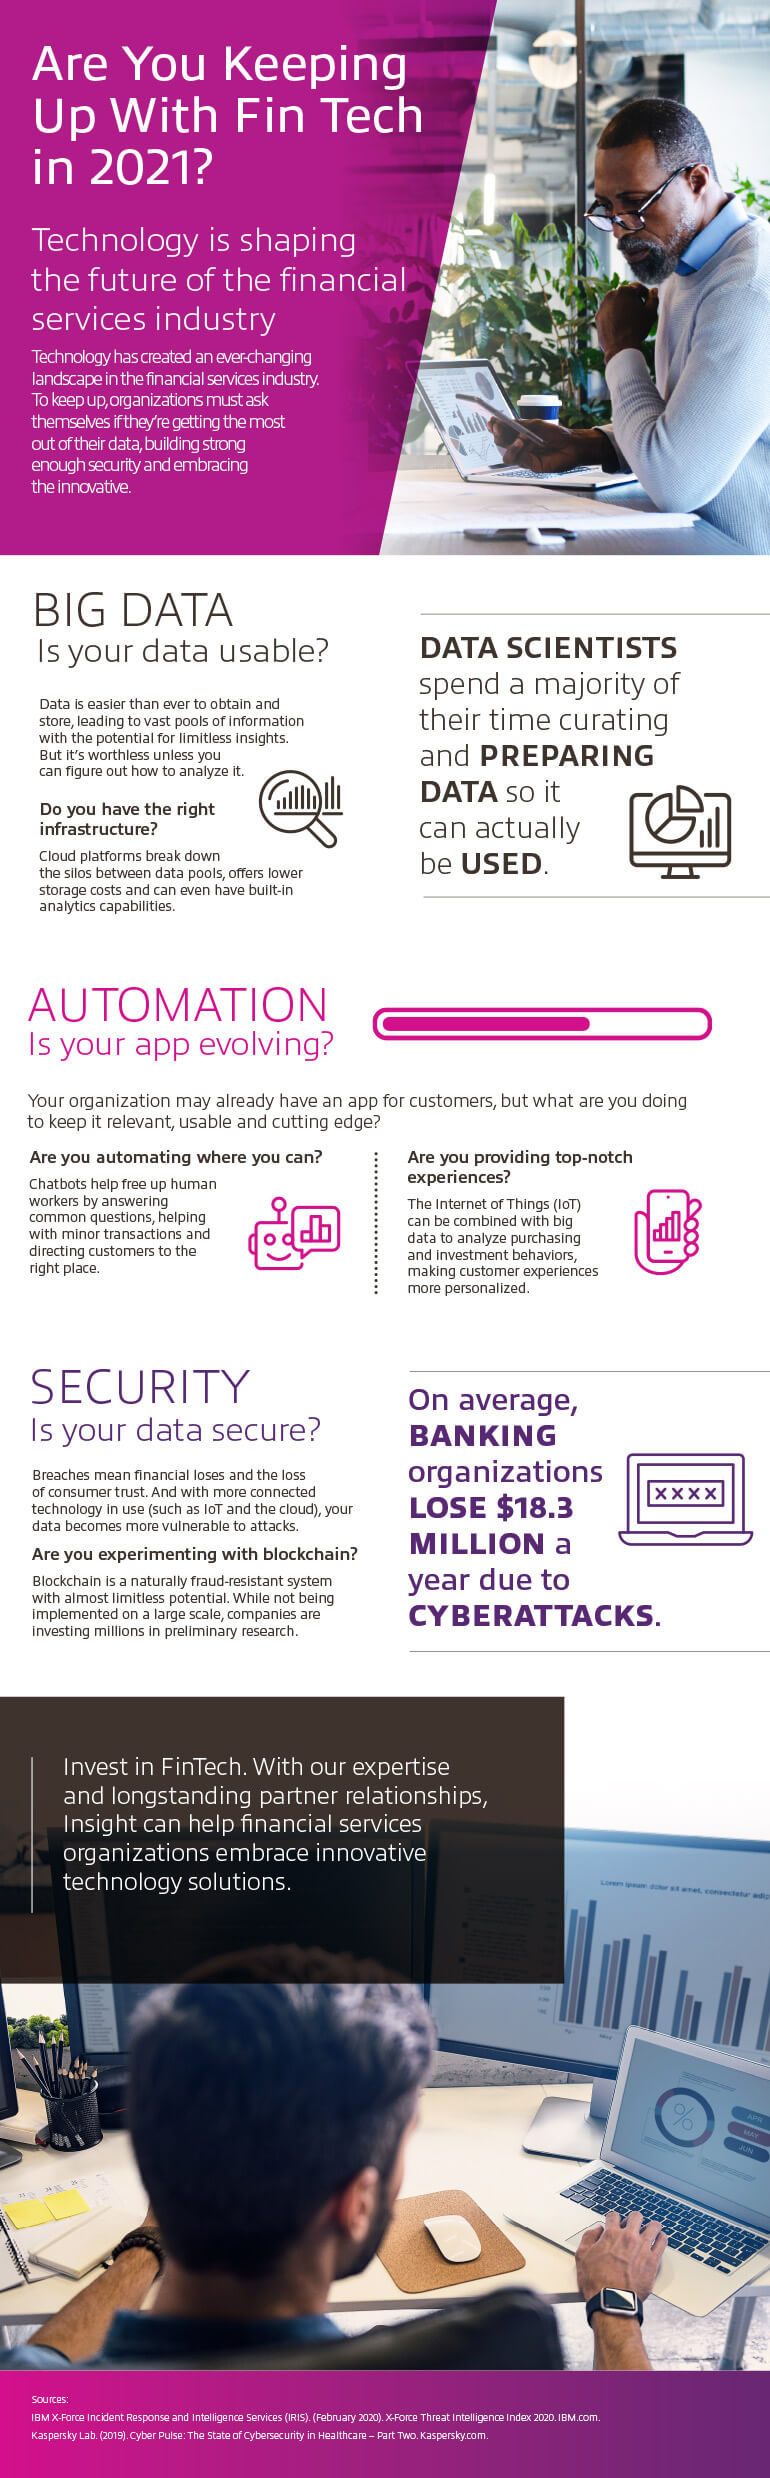 Are You Keeping Up With FinTech in 2021 infographic